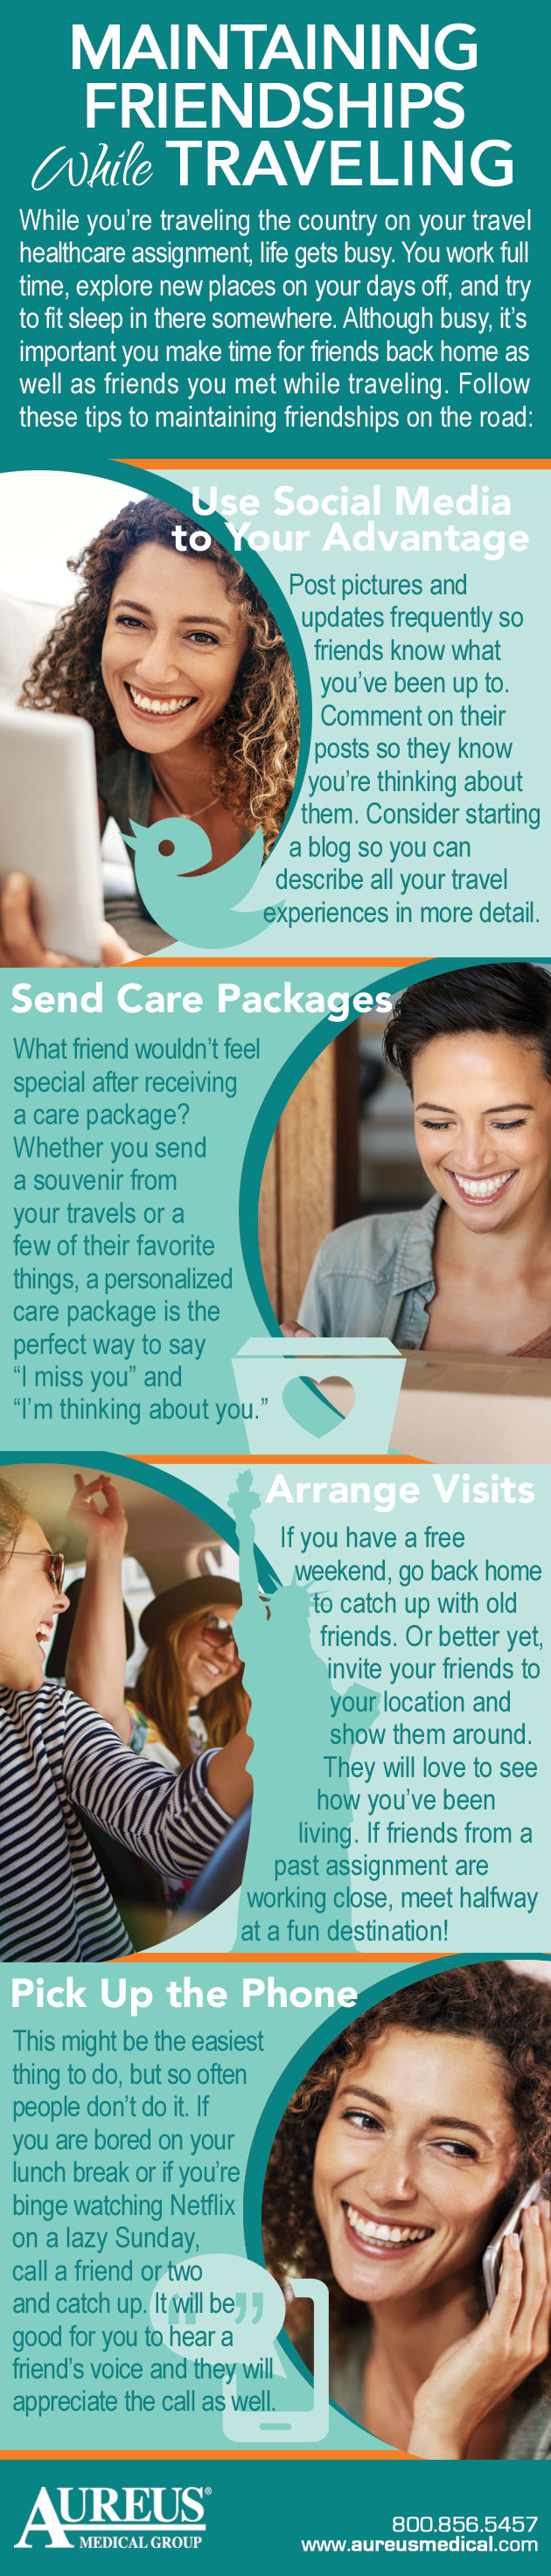 Maintaining Friendships While Traveling #infographic #Travel #infographics #Friendship #Maintaining Friendships